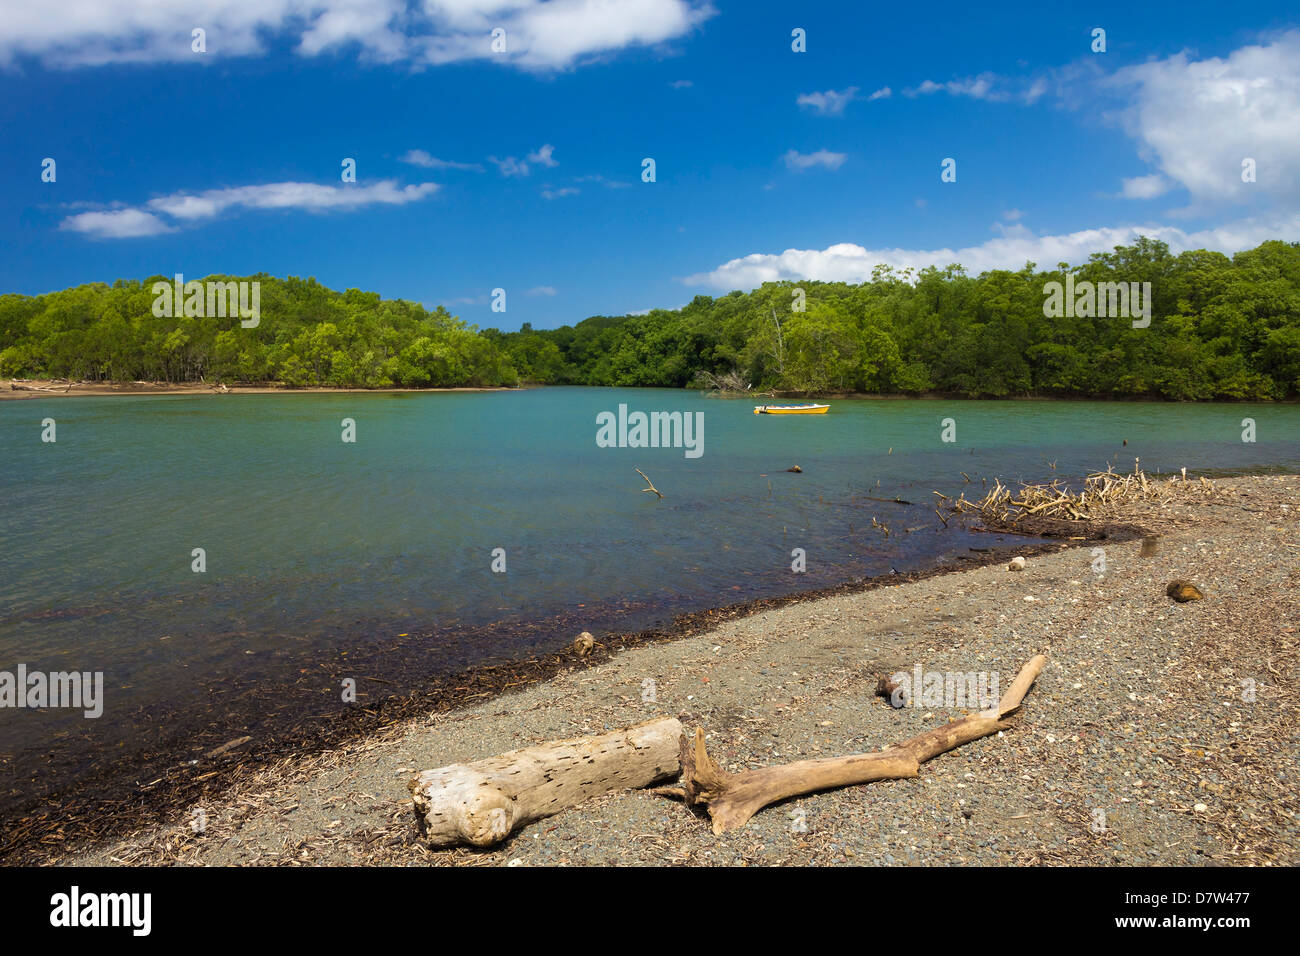 View across the Nosara River mouth towards the Biological Reserve, Nosara, Nicoya Peninsula, Guanacaste Province, Stock Photo